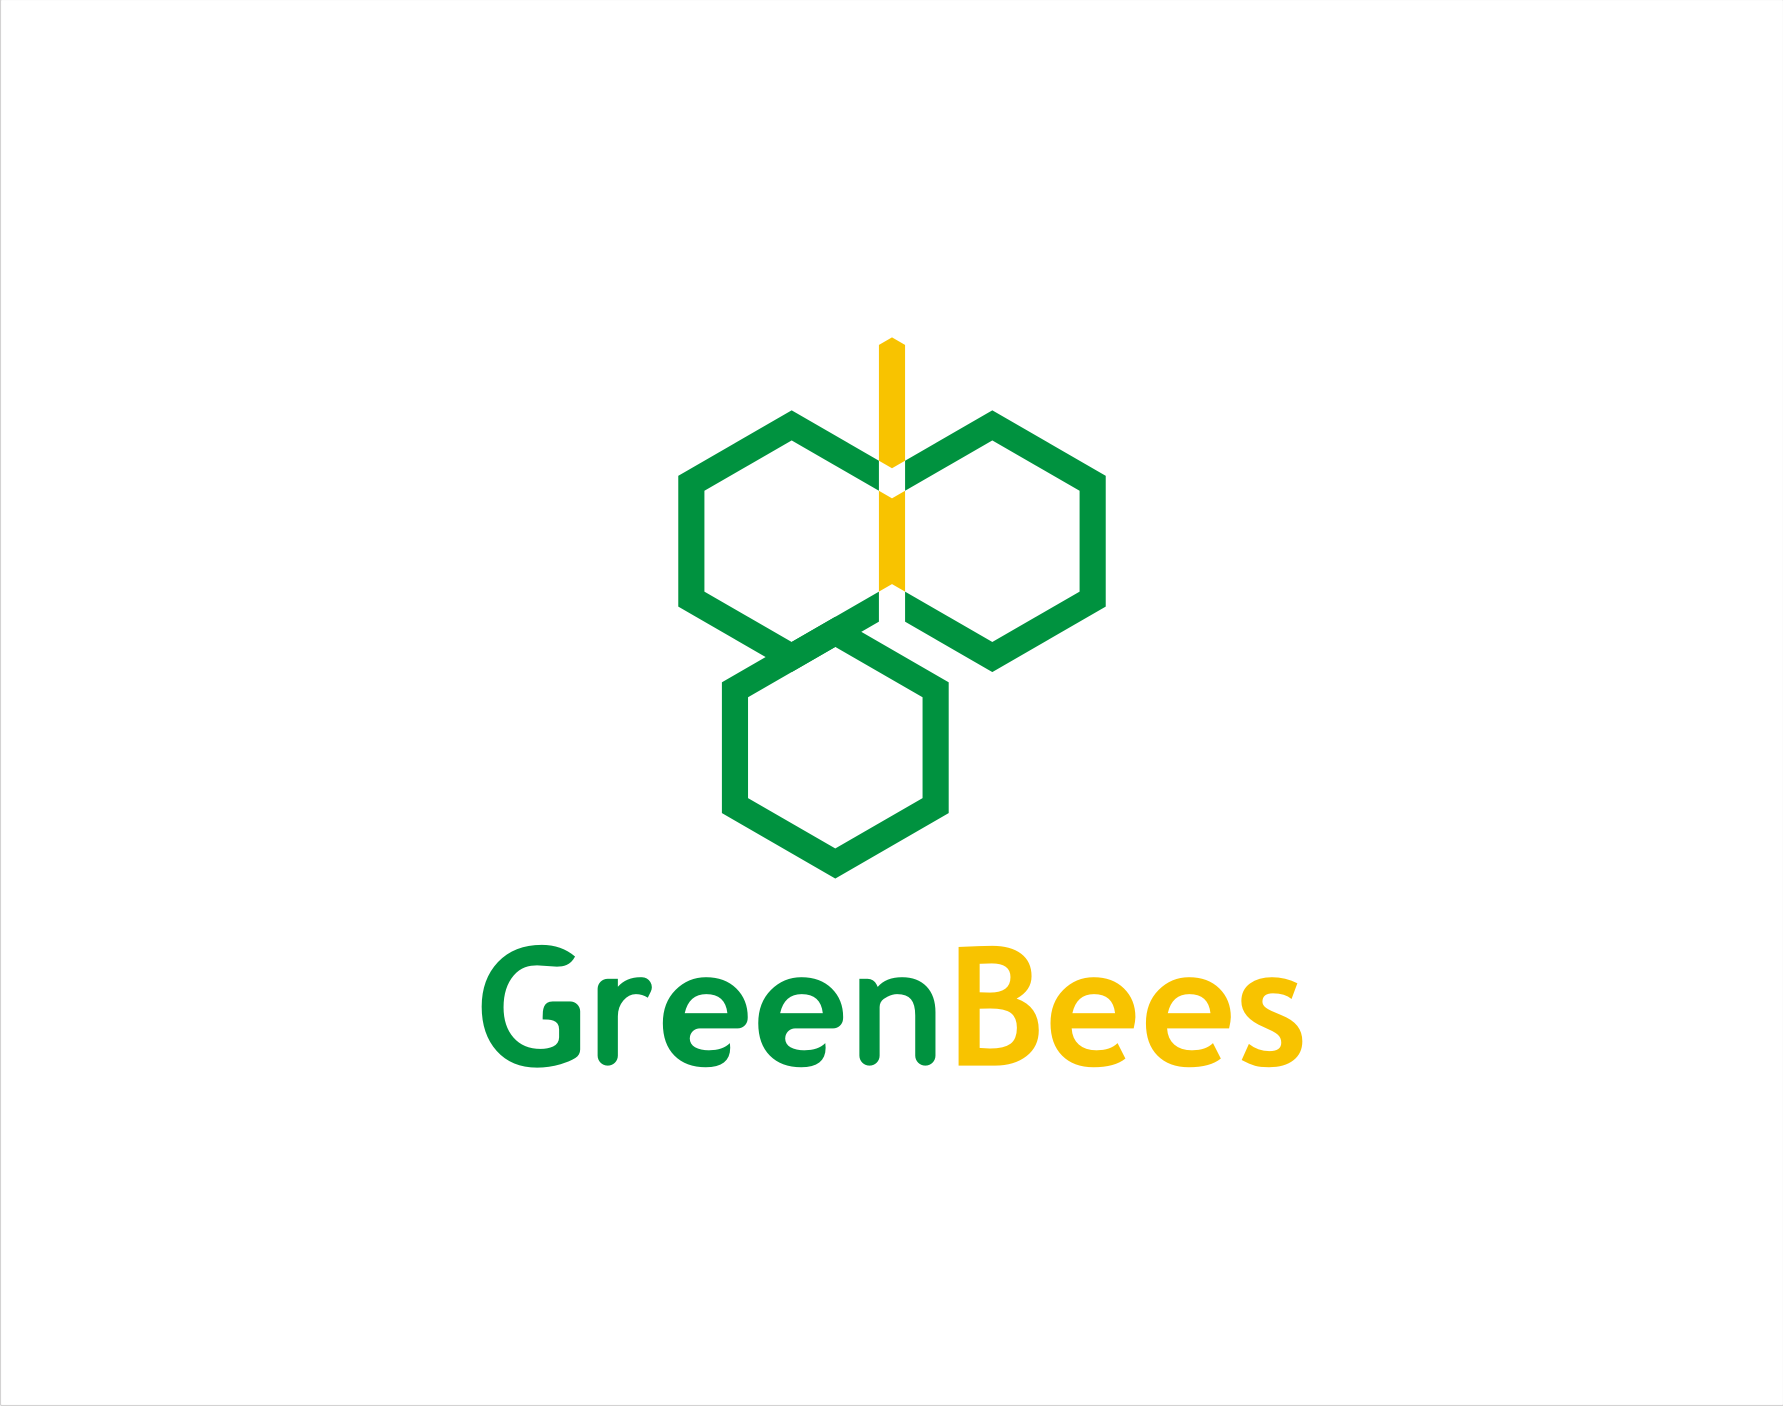 Logo Design by Armada Jamaluddin - Entry No. 326 in the Logo Design Contest Greenbees Logo Design.